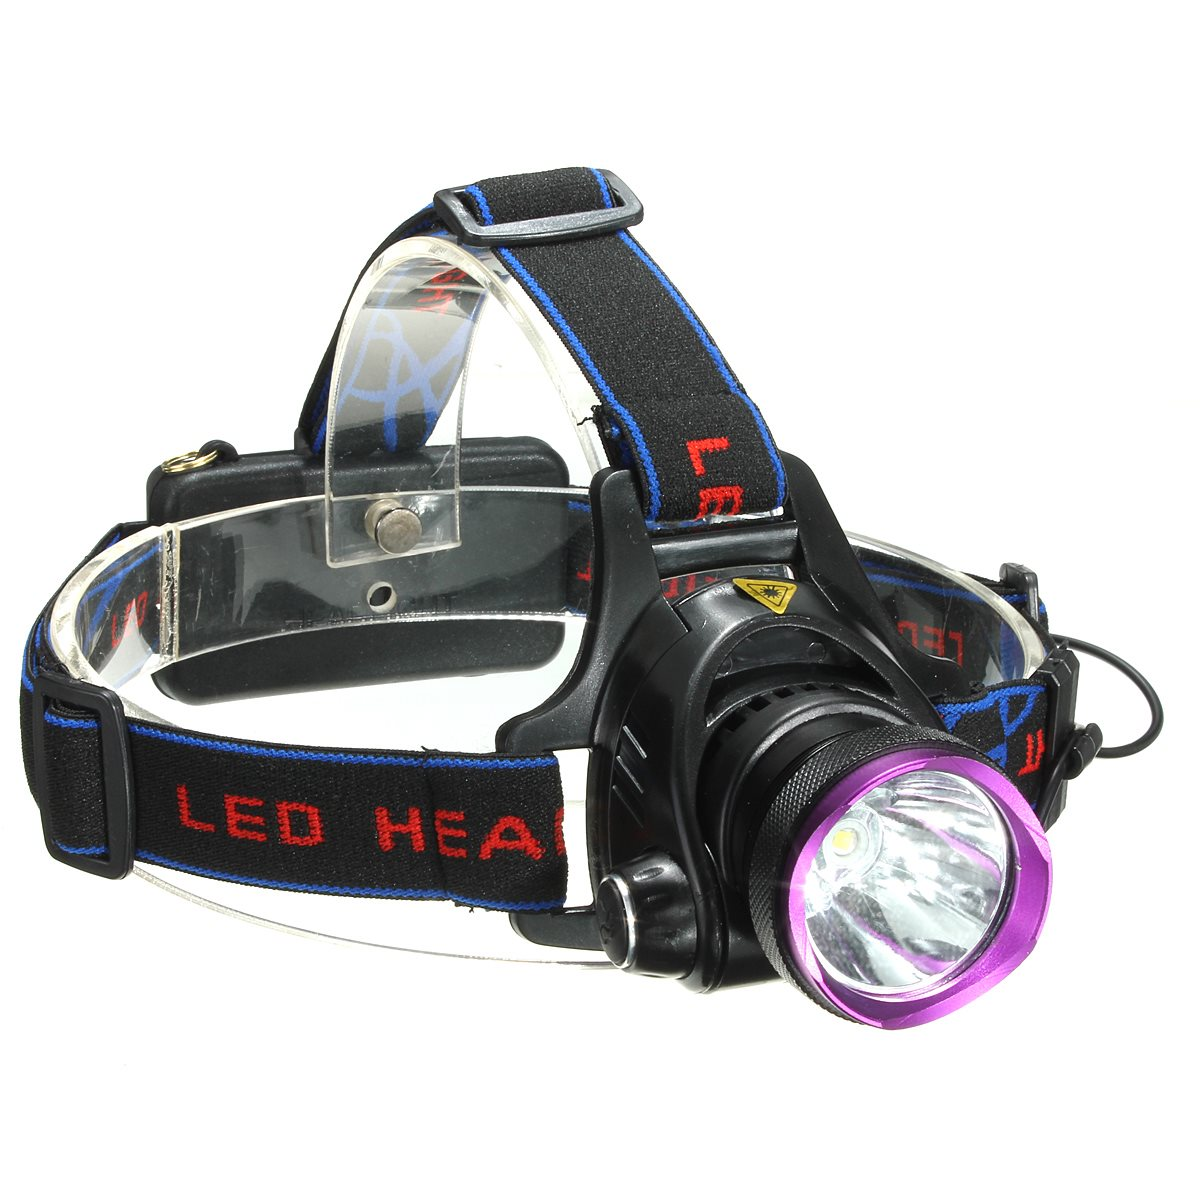 Adjustable 3 modes 3000 lumens Rechargeable T6 LED Headlight Bike bicycle Headlamp 18650 Head lamp Light For camping hiking<br><br>Aliexpress